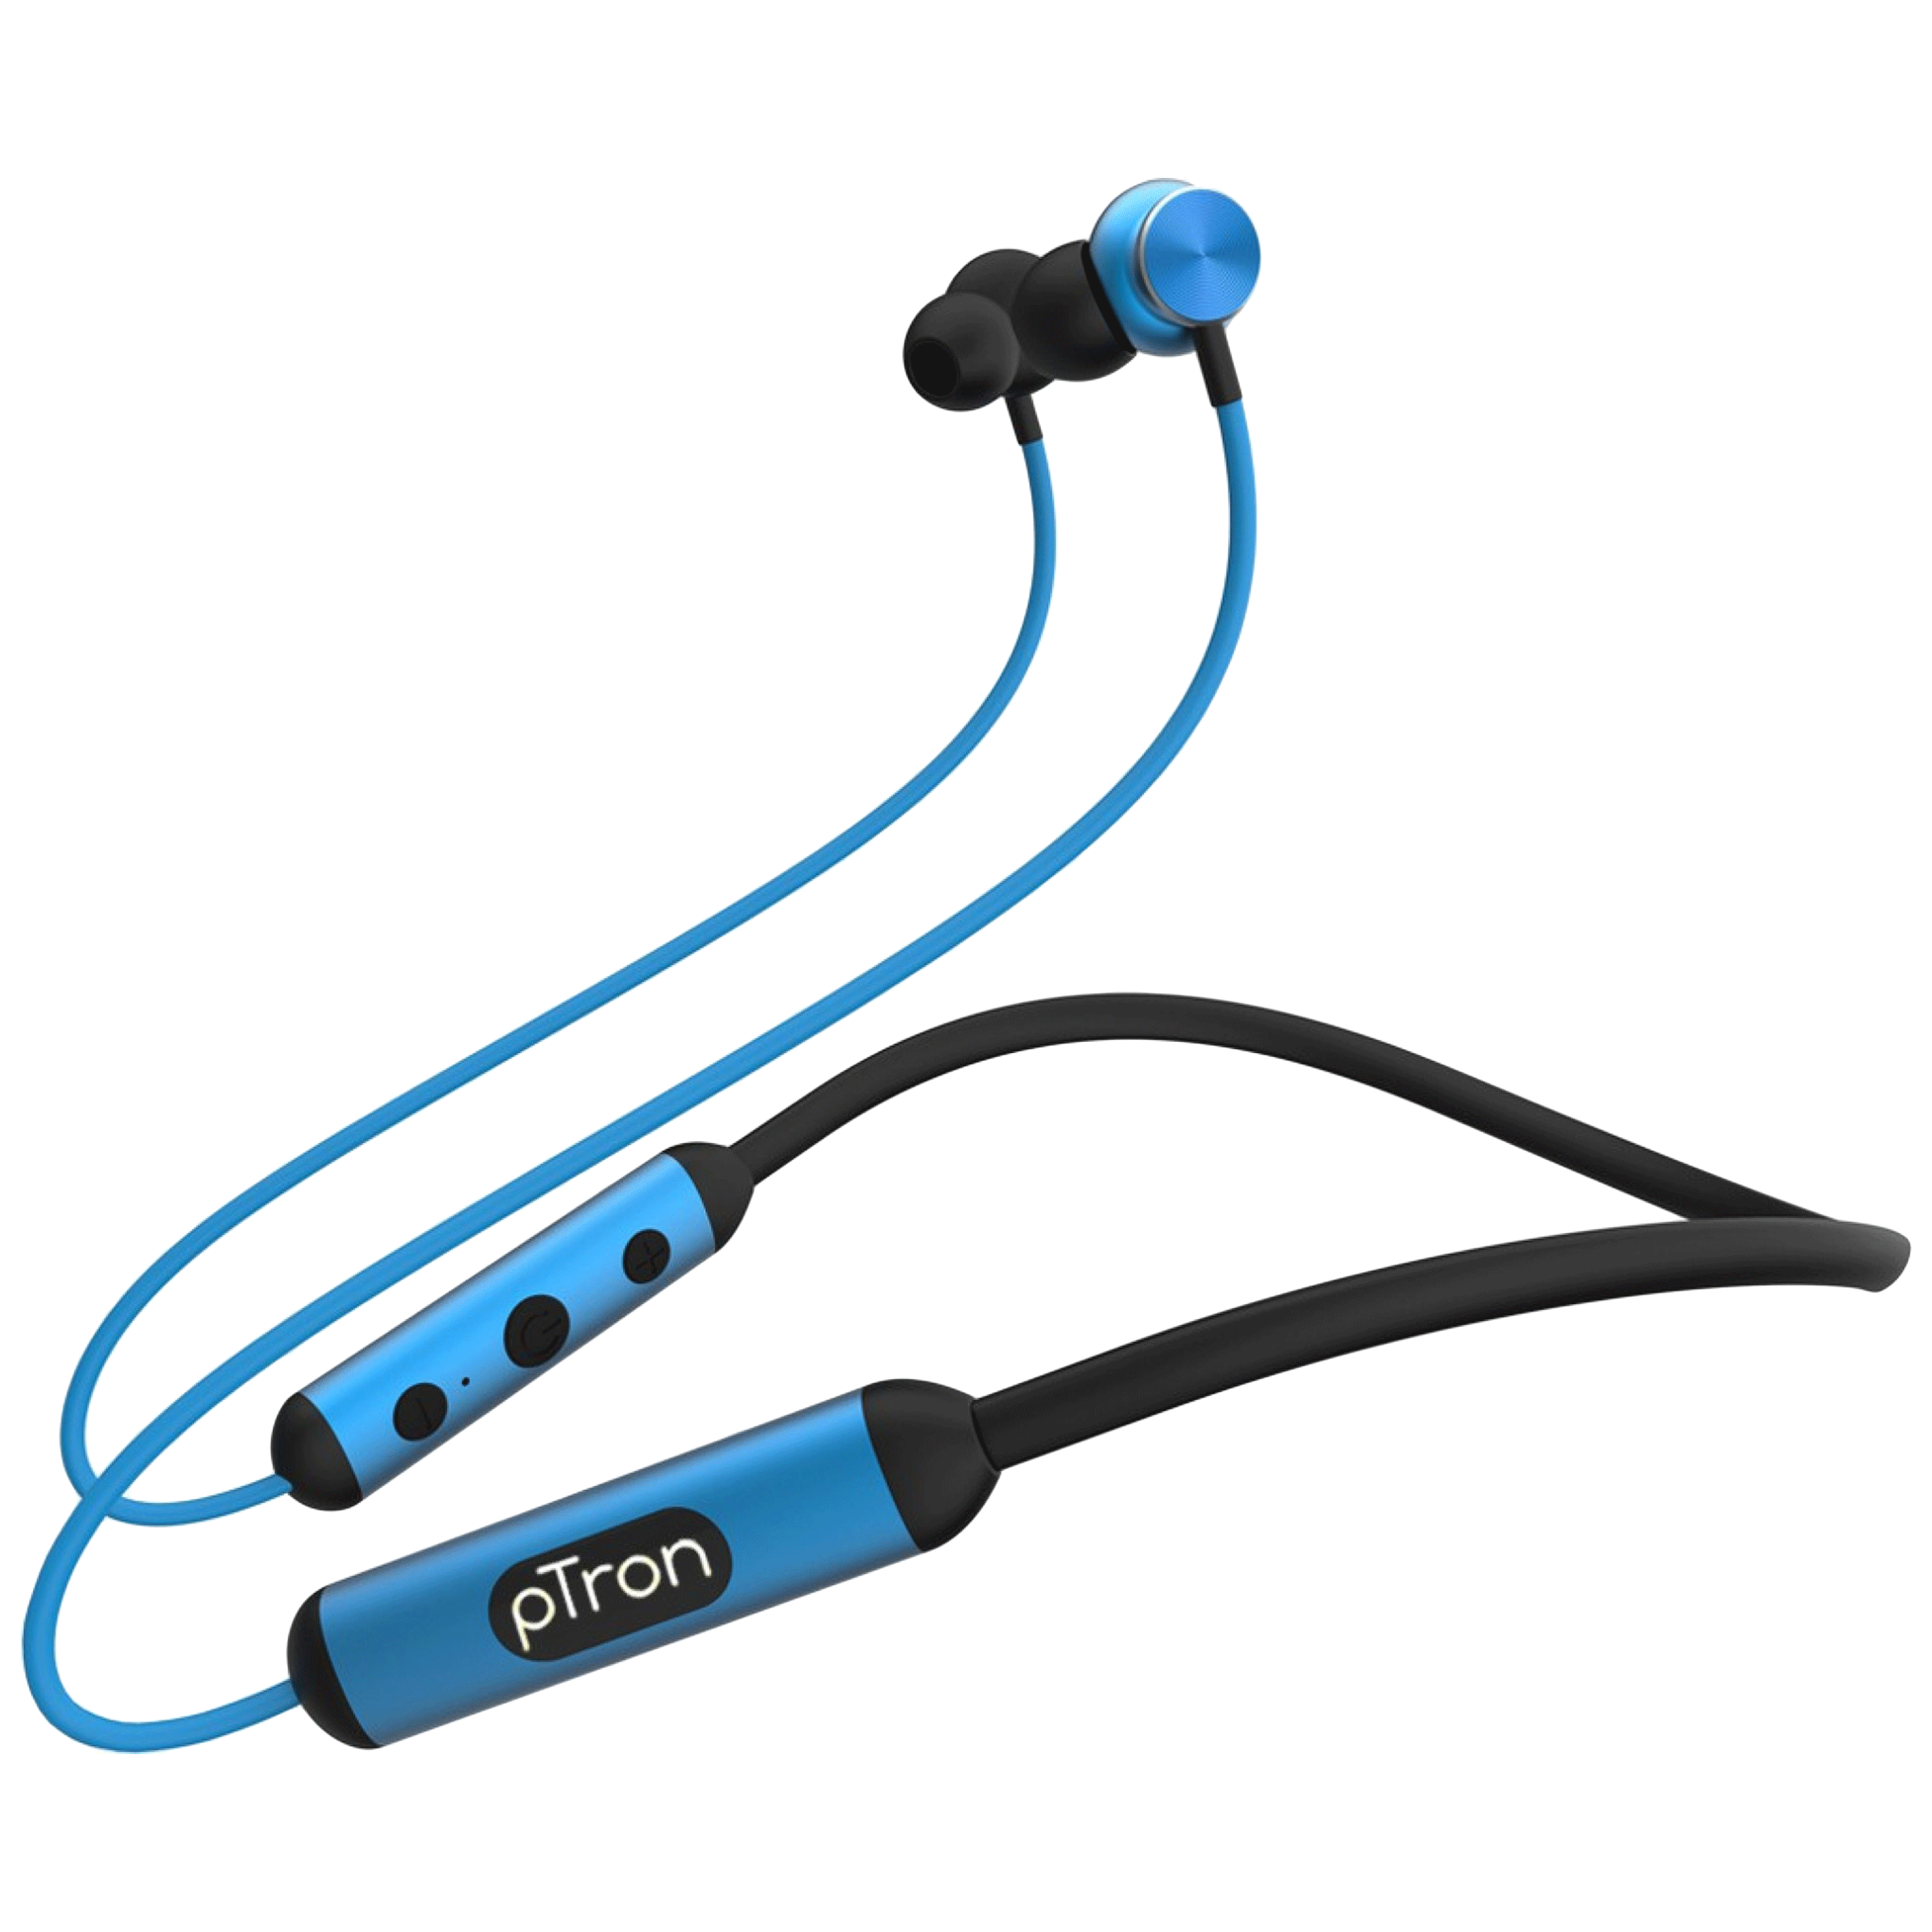 pTron InTunes Ultima In-Ear Passive Noise Cancellation Wireless Earphone with Mic (Bluetooth 5.0, Magnetic Earbuds, 140318023, Black/Blue)_1